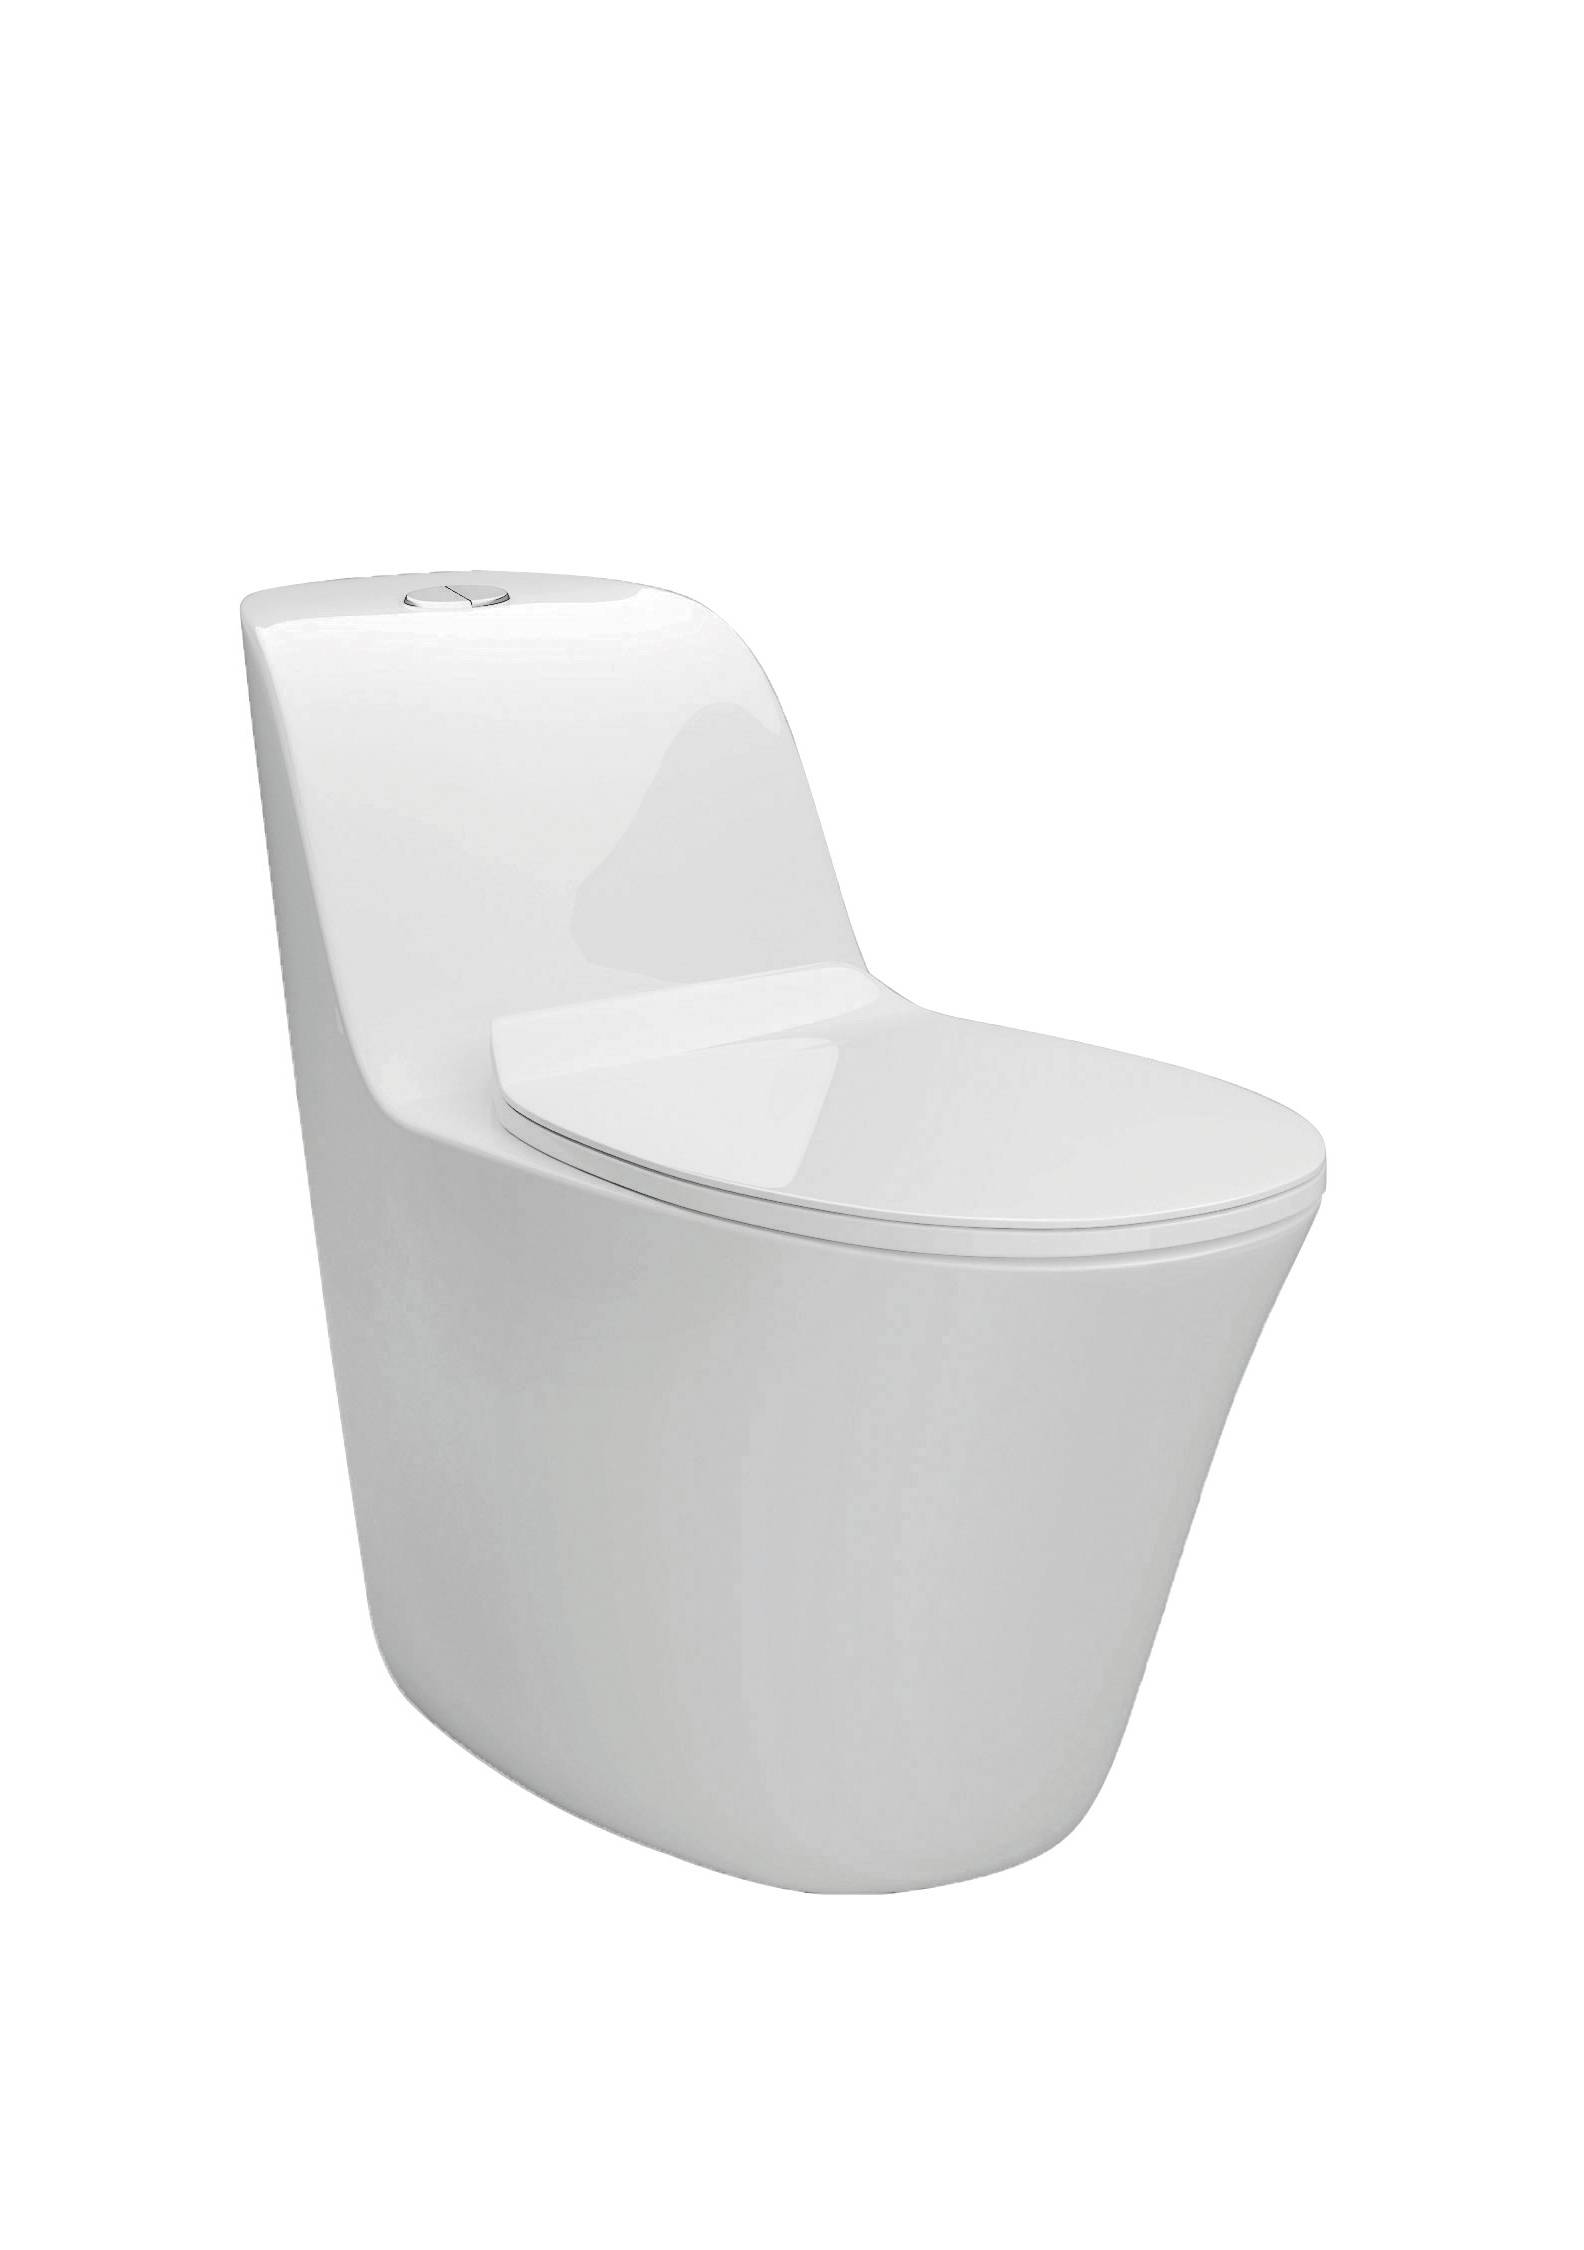 TA-8106 Sanitary Ware Dual Flush Siphon Jet Flushing One-piece Ceramic Toilet